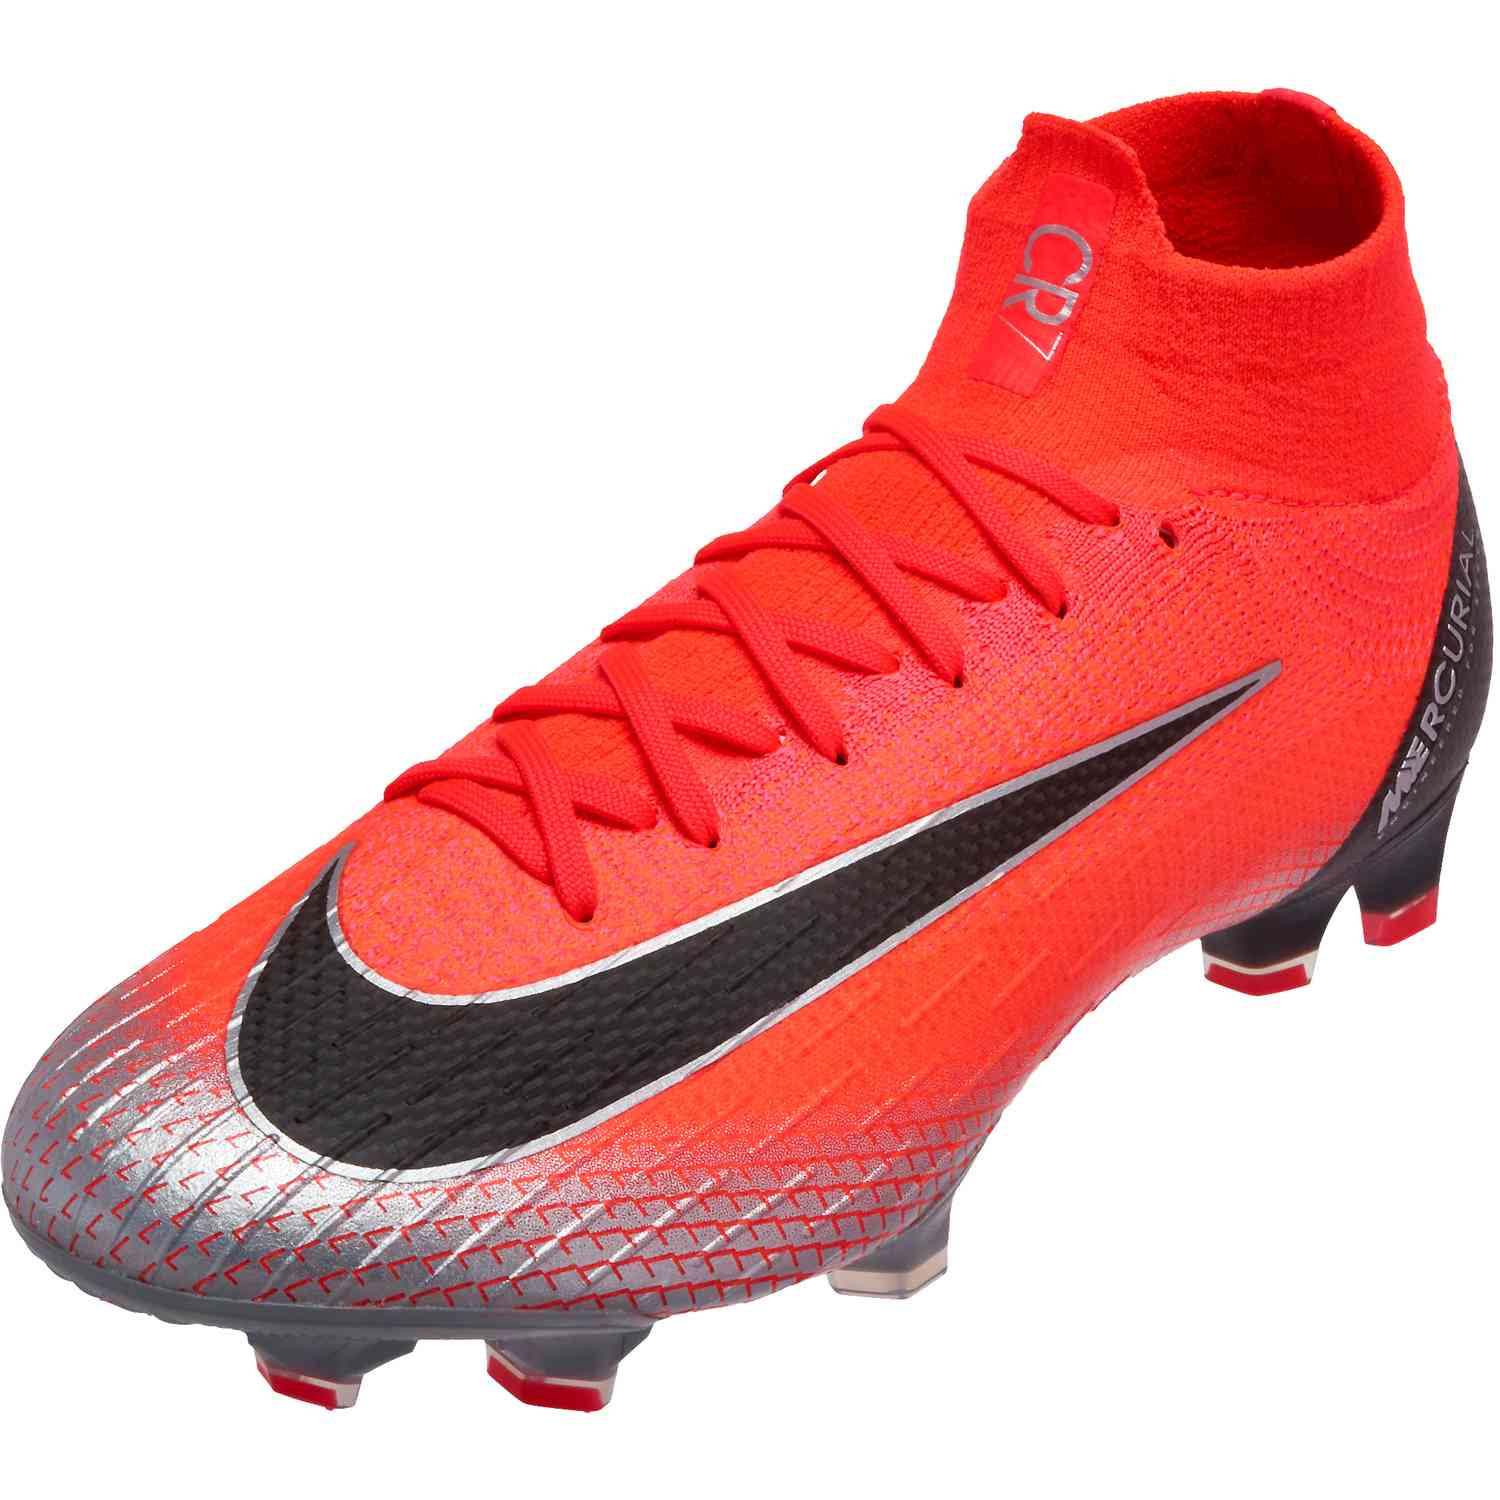 5088cb6a52d3 Nike Mercurial Superfly 6 Elite FG – CR7 – Flash Crimson Black Total Crimson